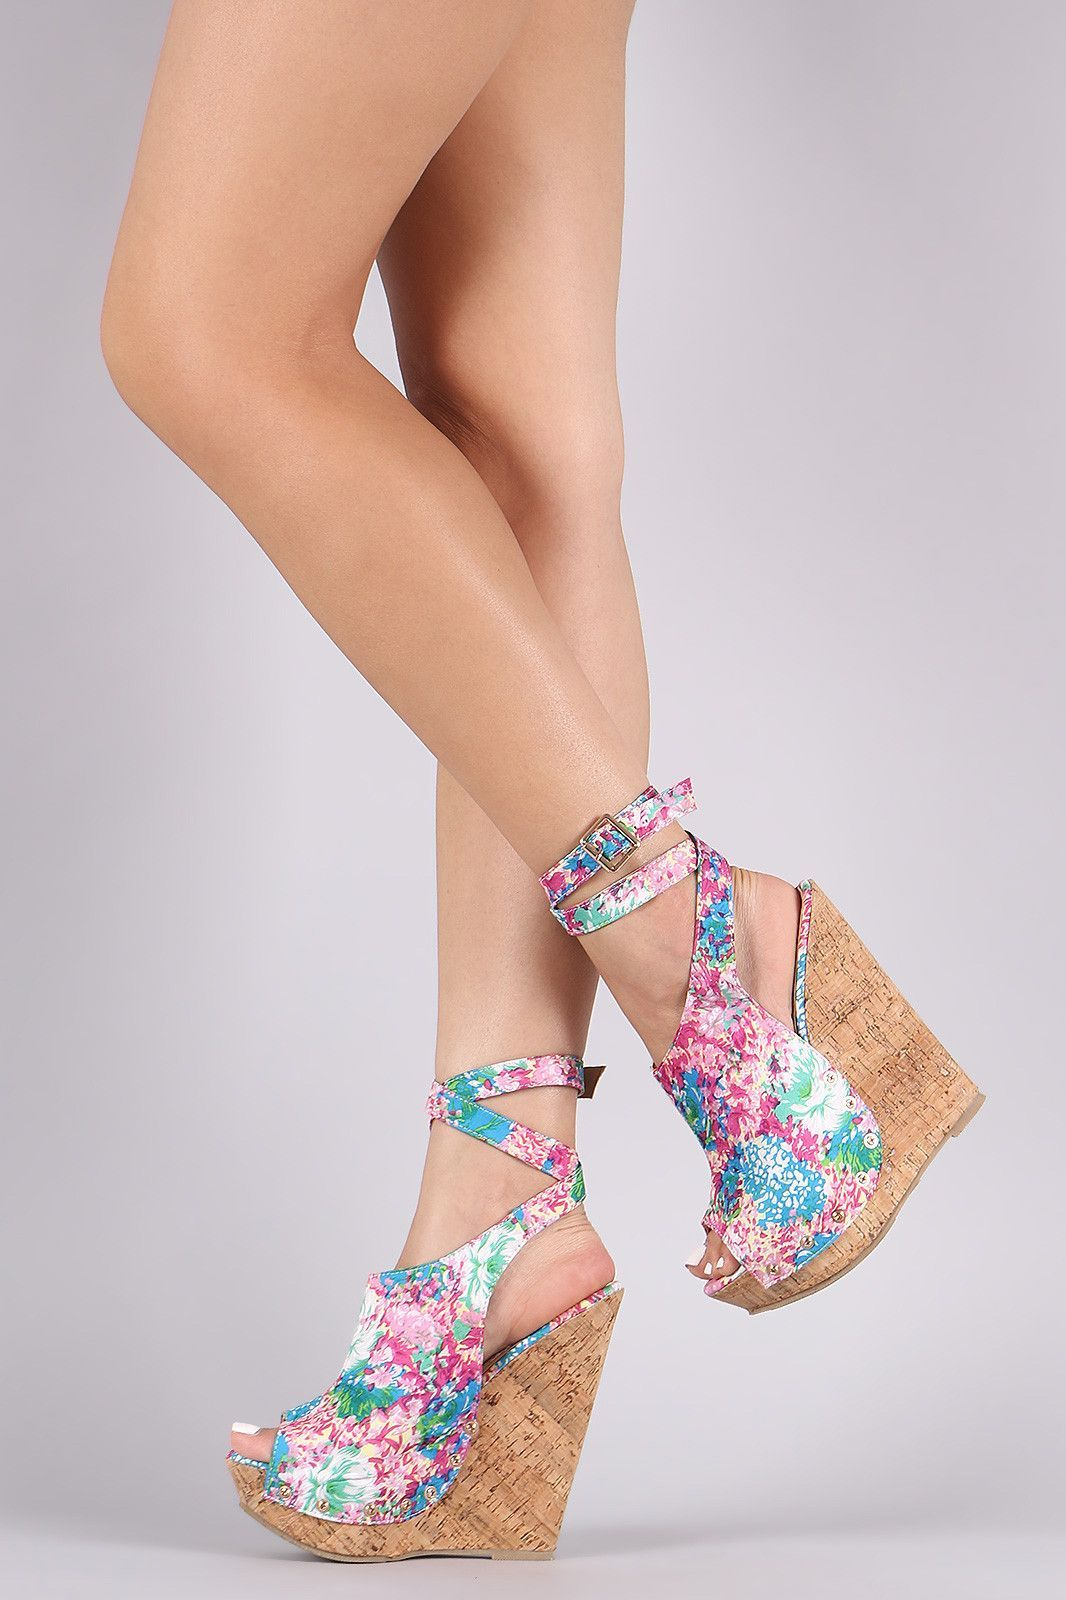 9be762a39 Floral Ankle Strap Studded Cork Platform Wedge. Floral Ankle Strap Studded  Cork Platform Wedge Wedge Shoes